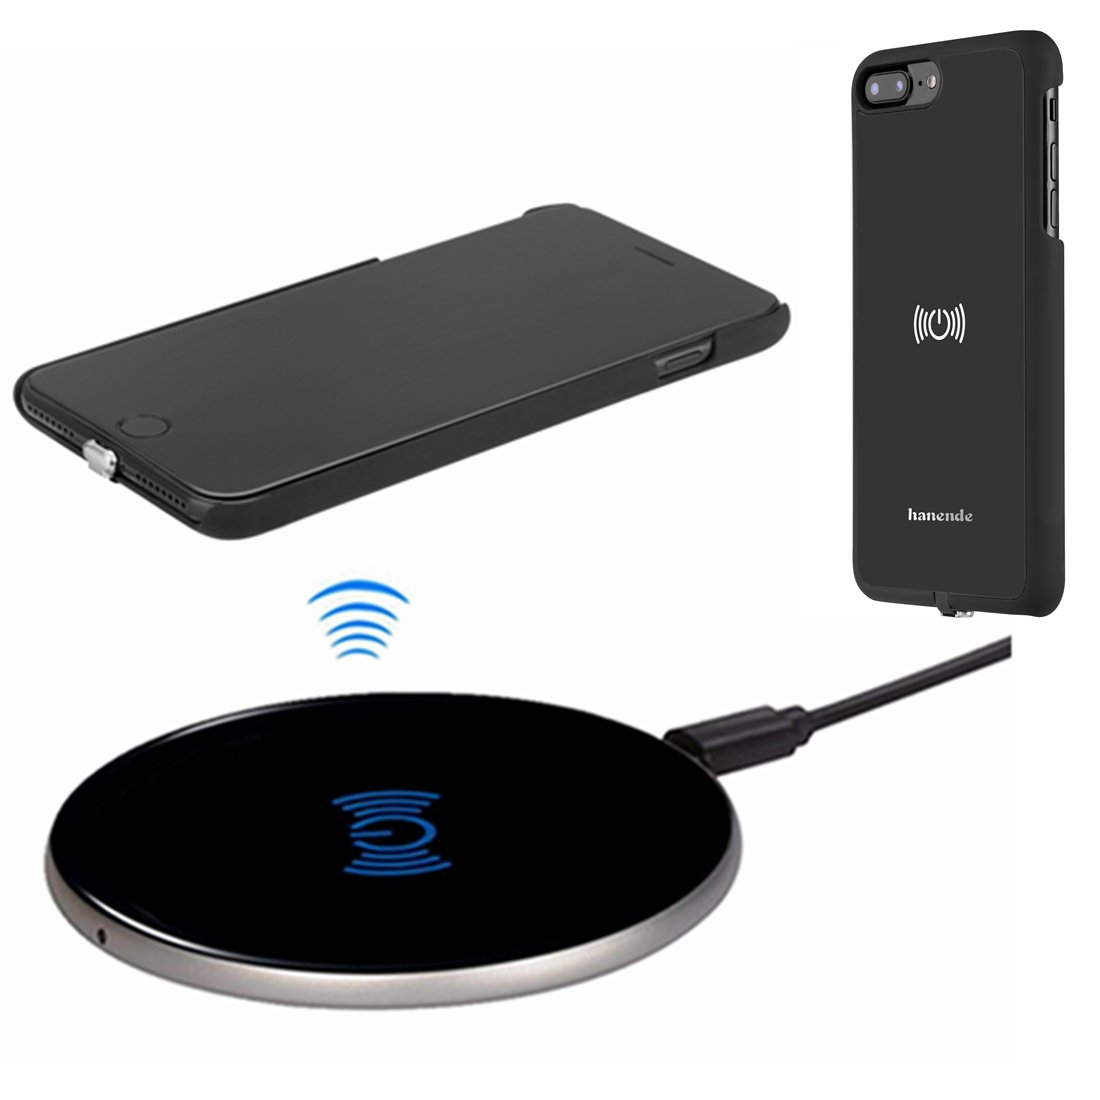 buy popular 04c77 fc609 Wireless Charger Kit for iPhone 7 Plus, hanende [Sleep-Friendly] Qi  Wireless Charging Pad and Wireless Receiver Case for iPhone 7 Plus (Jet  Black)